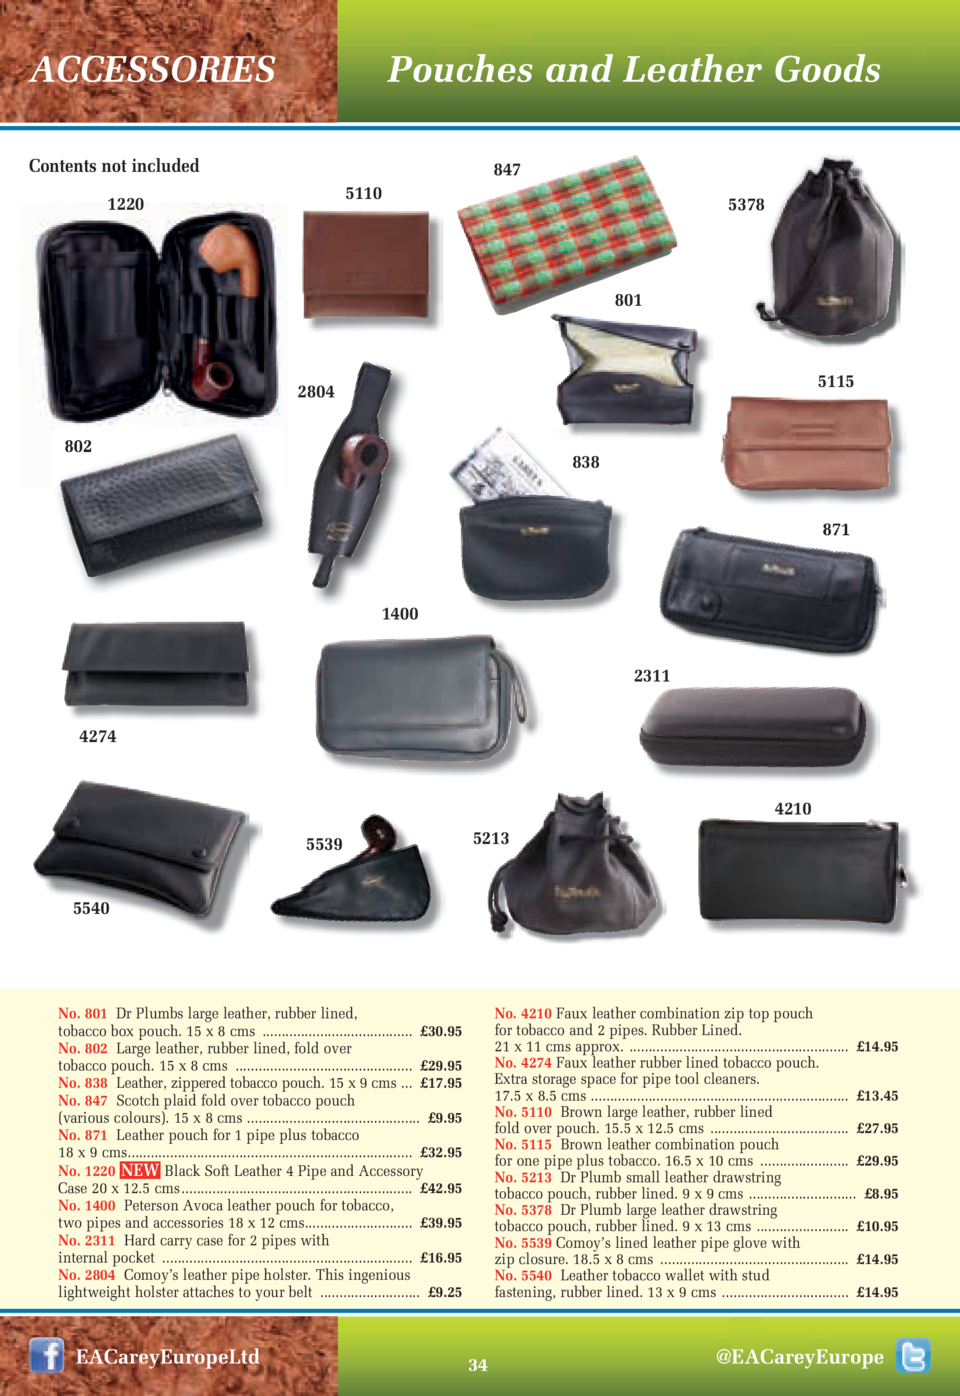 Pouches and Leather Goods  ACCESSORIES Contents not included  847 5110  1220  5378  801  5115  2804 802  838 871  1400 231...